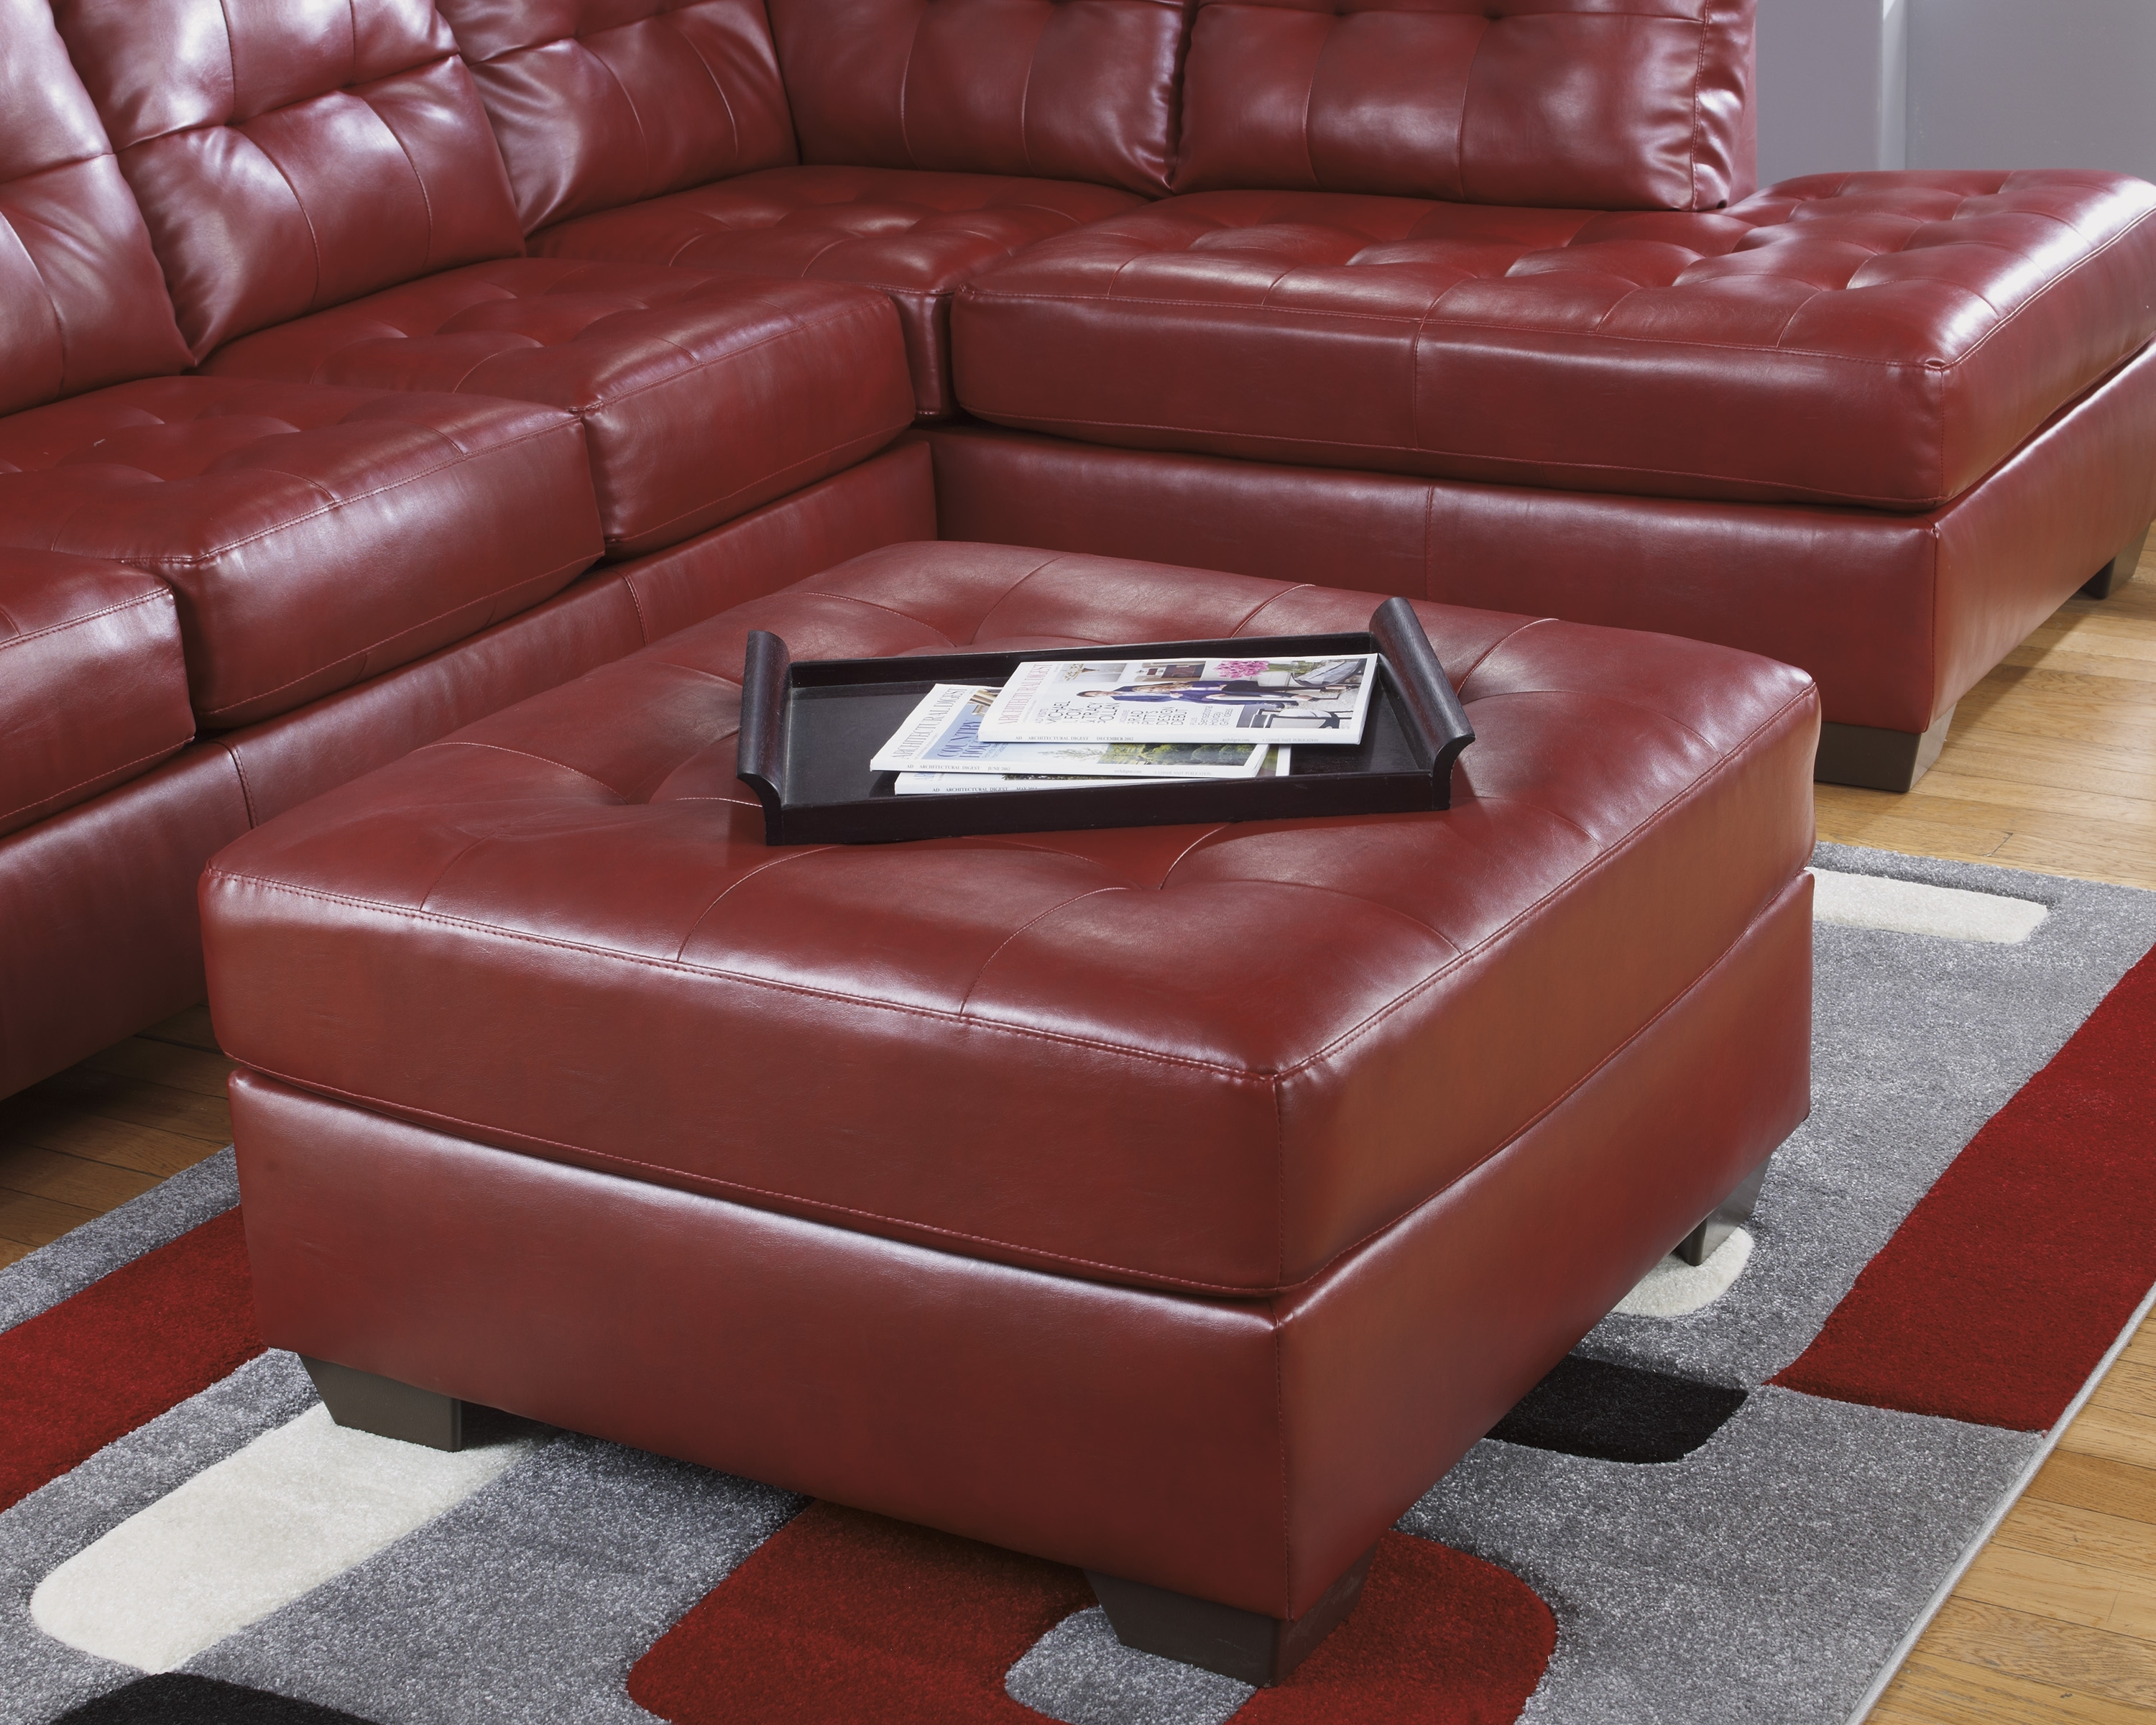 Ashley Furniture Leather Sectionals, Ashley Furniture Sofa Sleepers within Red Leather Sectionals With Ottoman (Image 2 of 15)